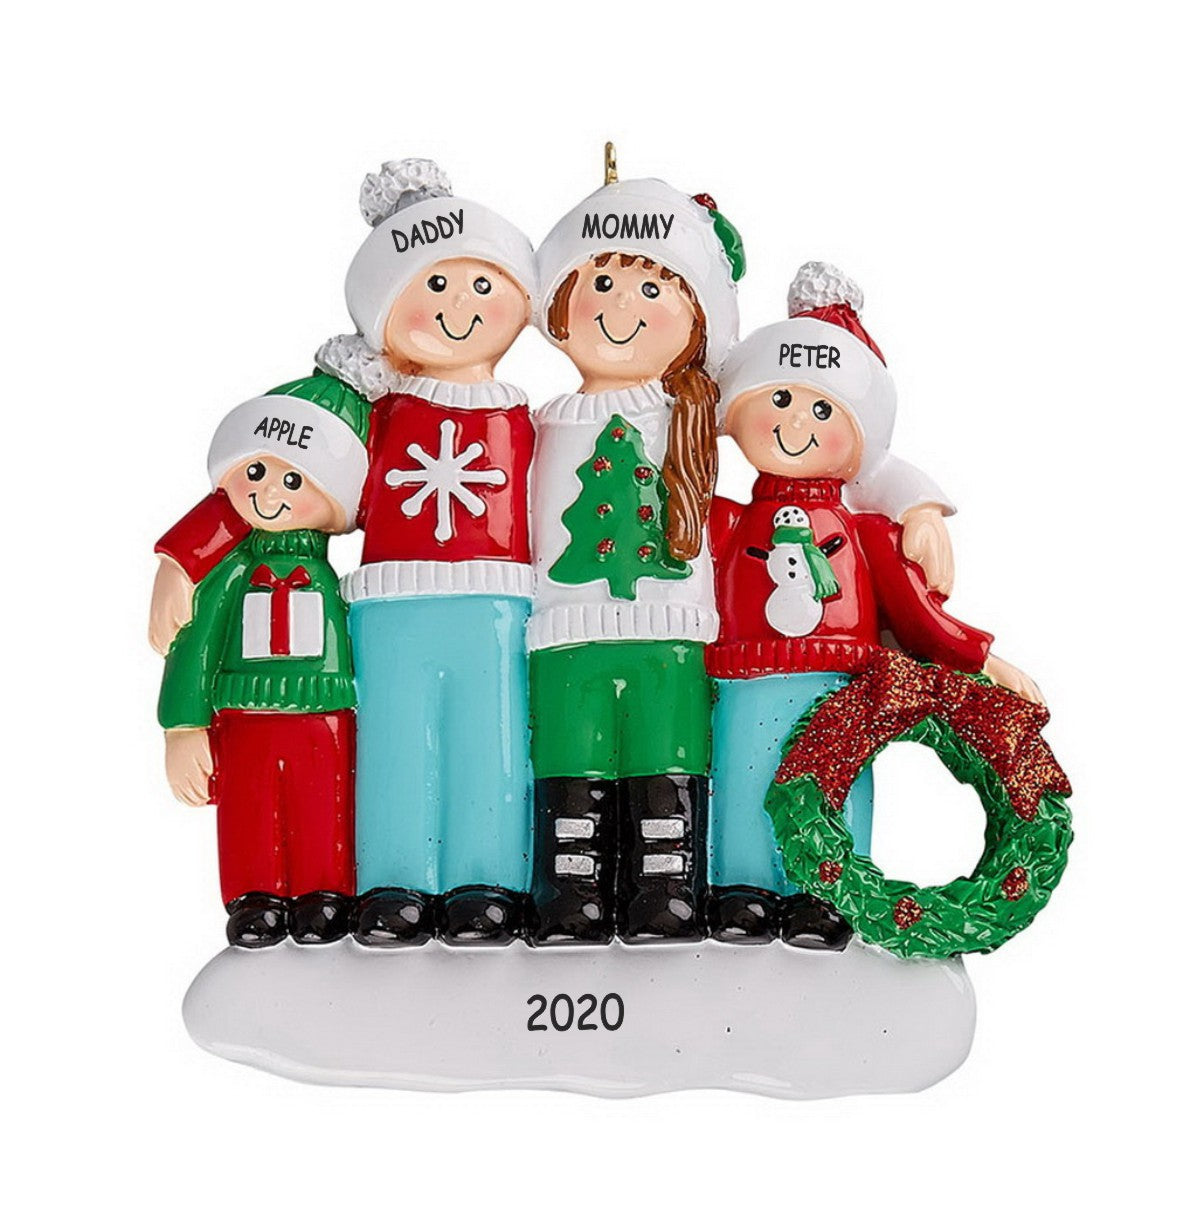 Personalized Ugly Sweater Family Christmas Ornament - Family of 4